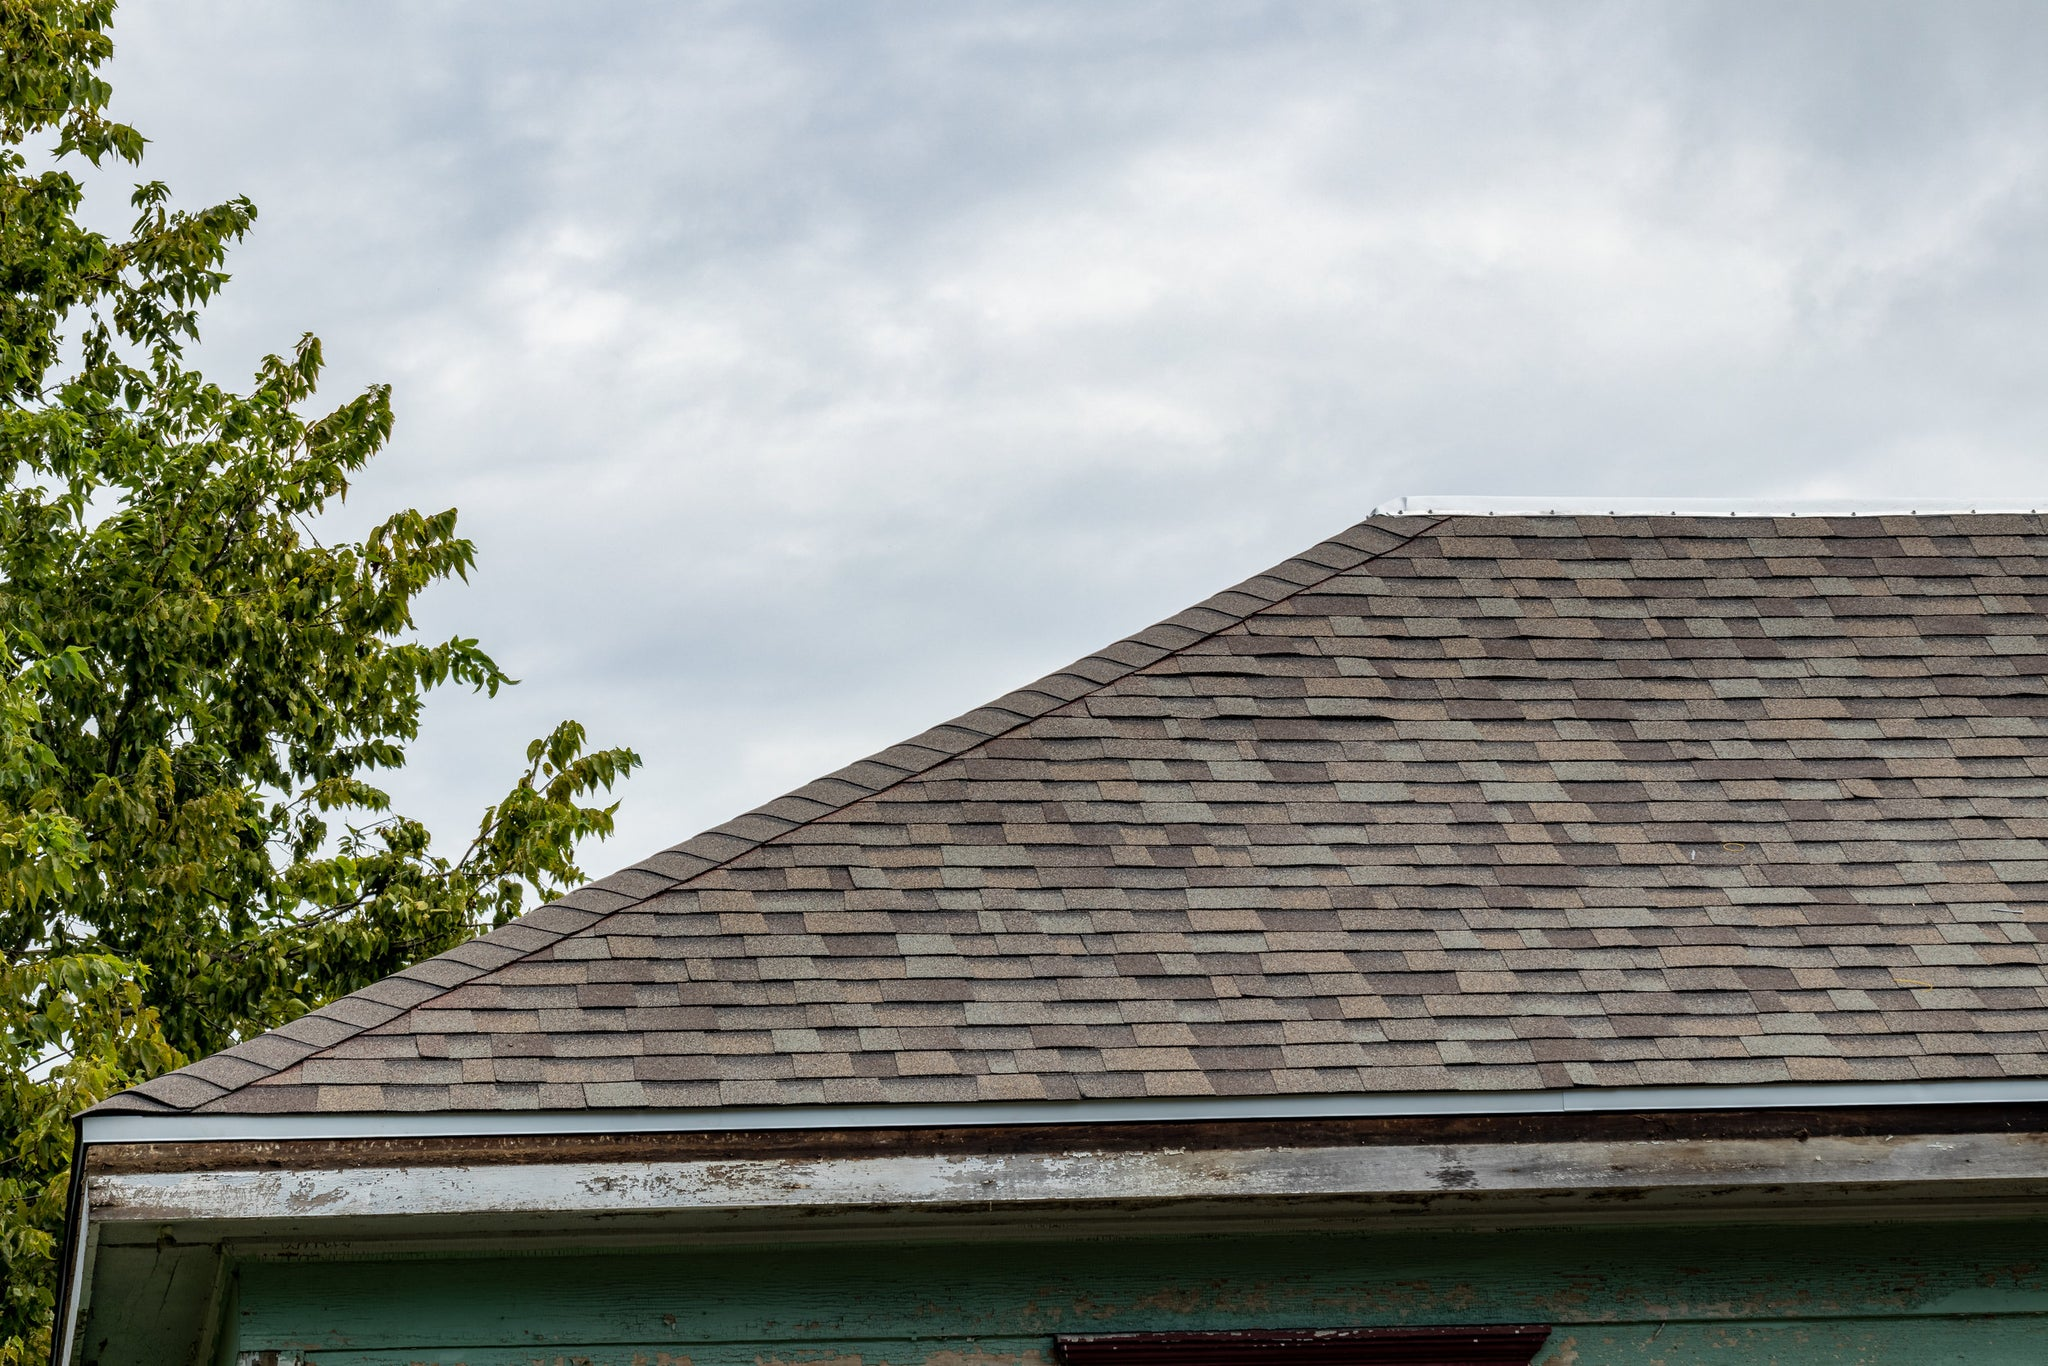 schafer roofing restores roof in 24 hours